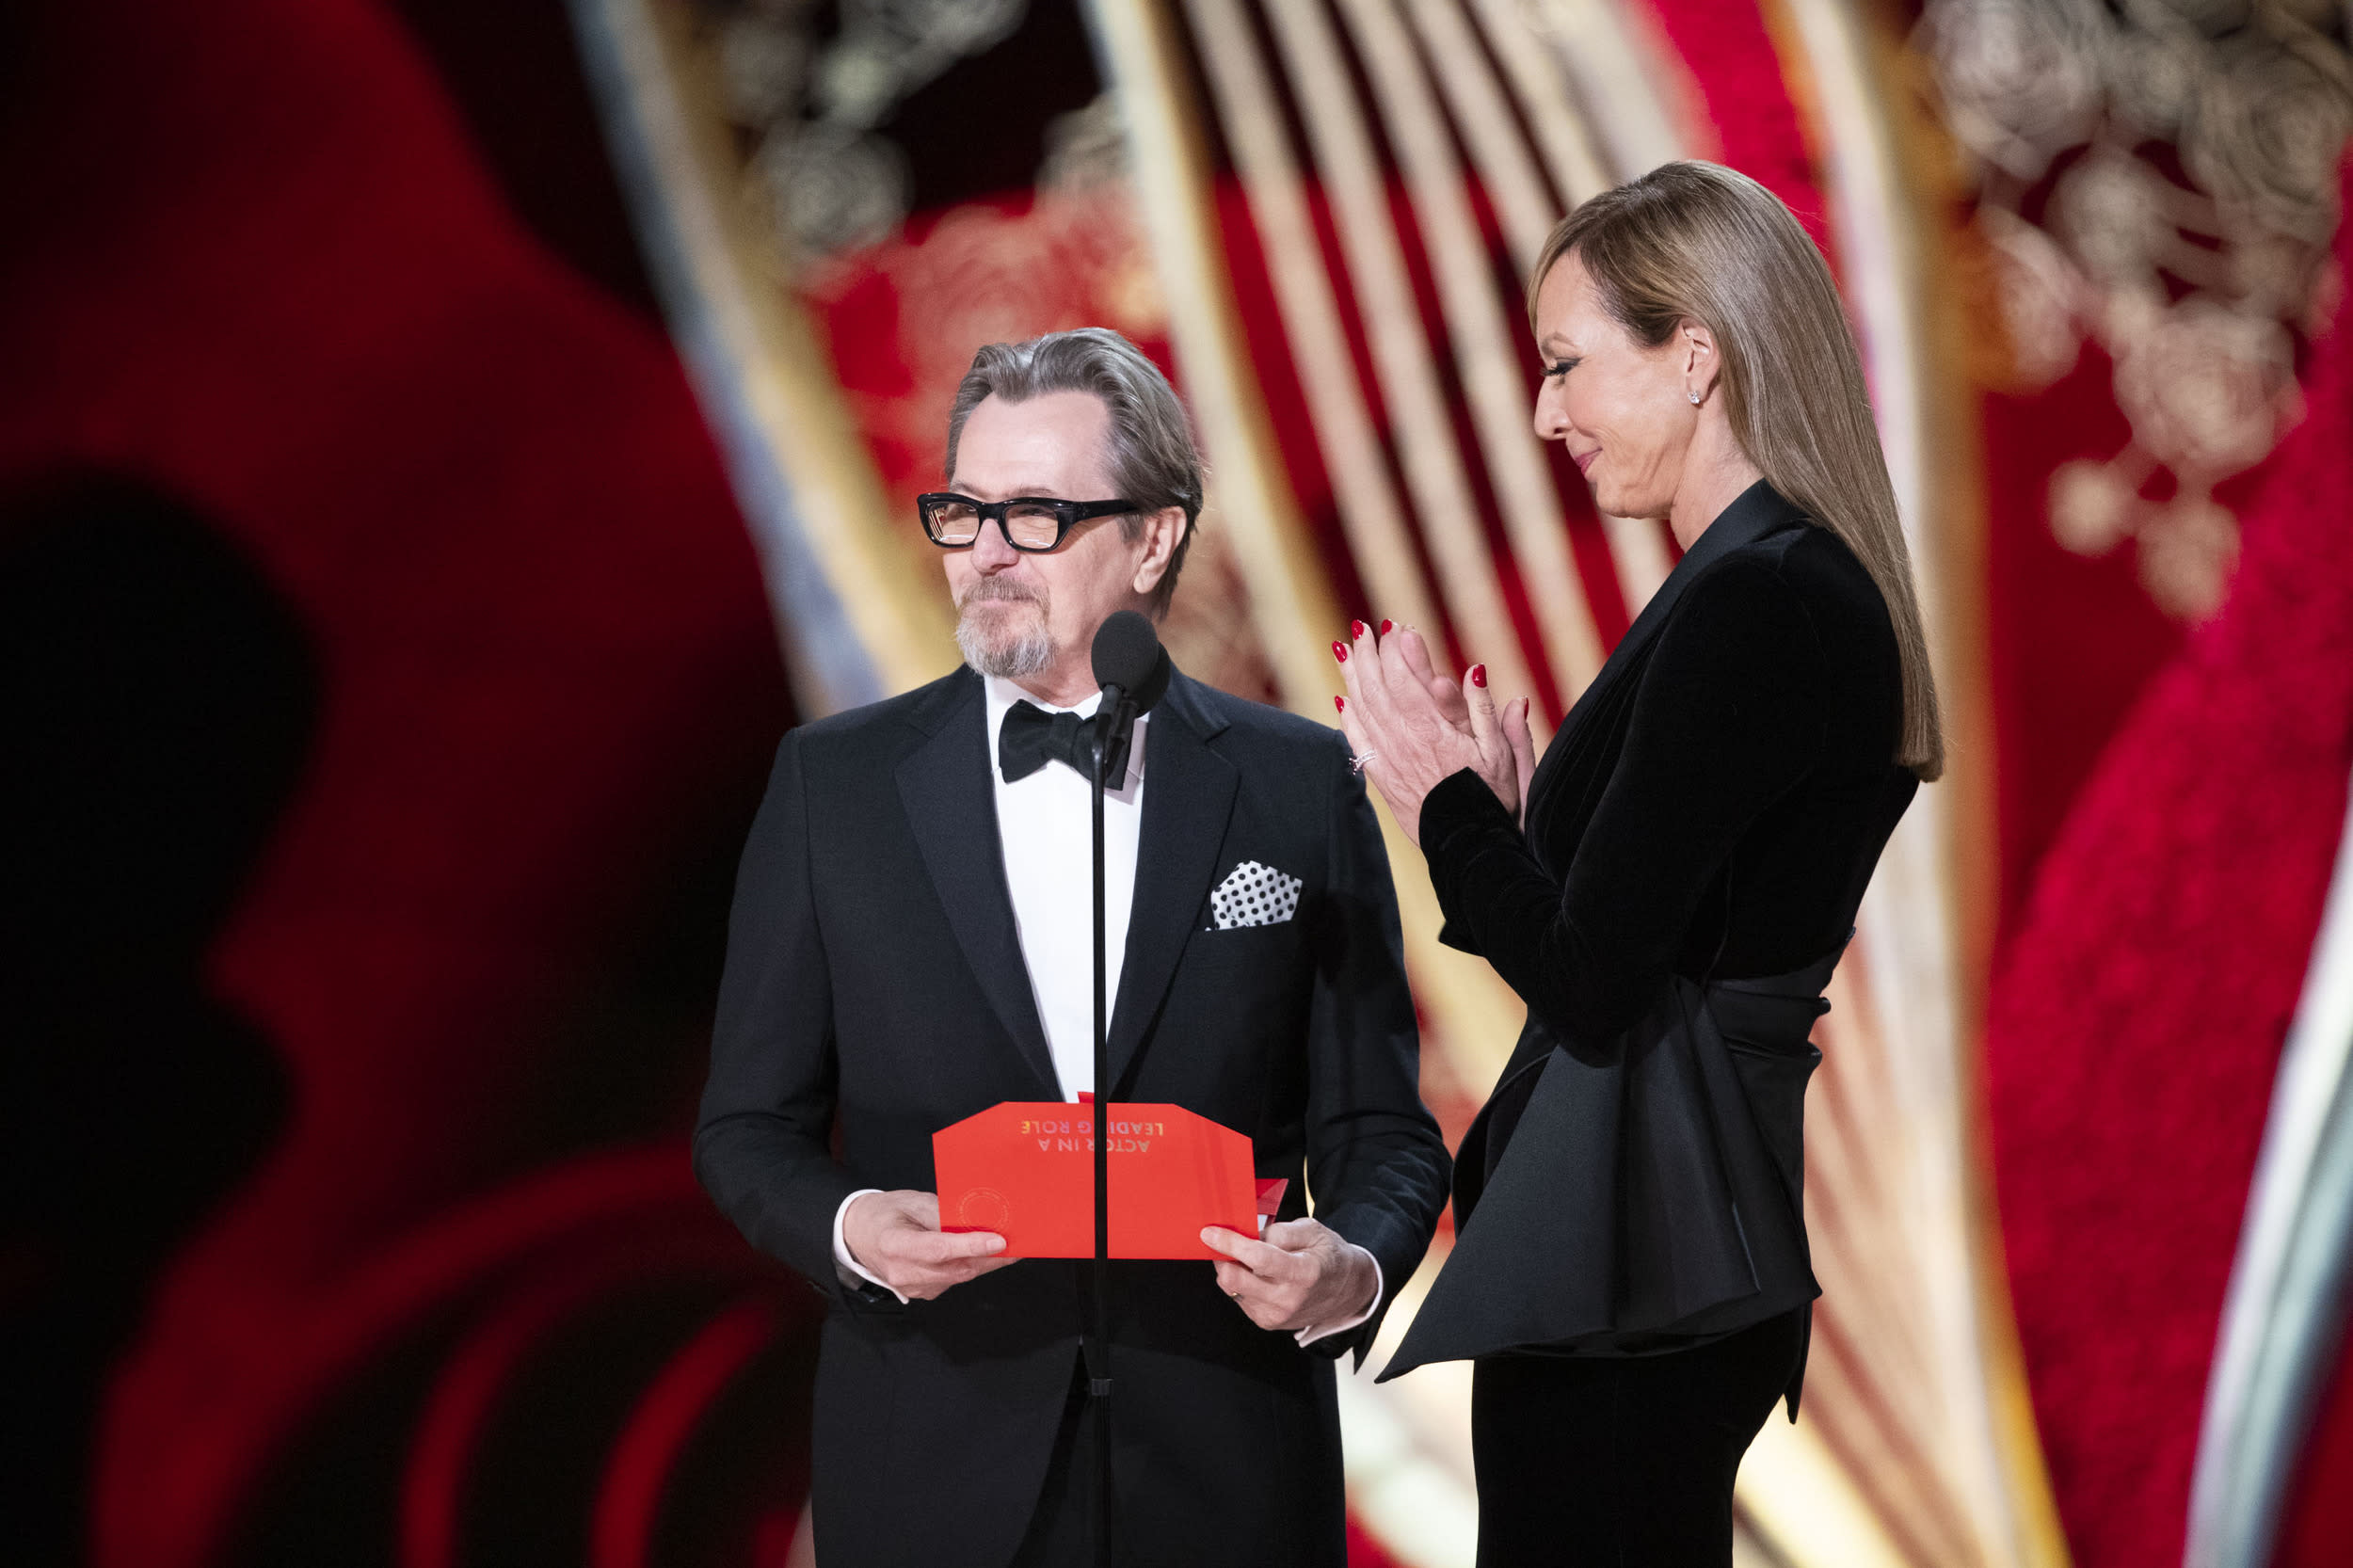 THE OSCARS® - The 91st Oscars® broadcasts live on Sunday, Feb. 24, 2019, at the Dolby Theatre® at Hollywood & Highland Center® in Hollywood and will be televised live on The ABC Television Network at 8:00 p.m. EST/5:00 p.m. PST.  (Craig Sjodin via Getty Images) GARY OLDMAN, ALLISON JANNEY